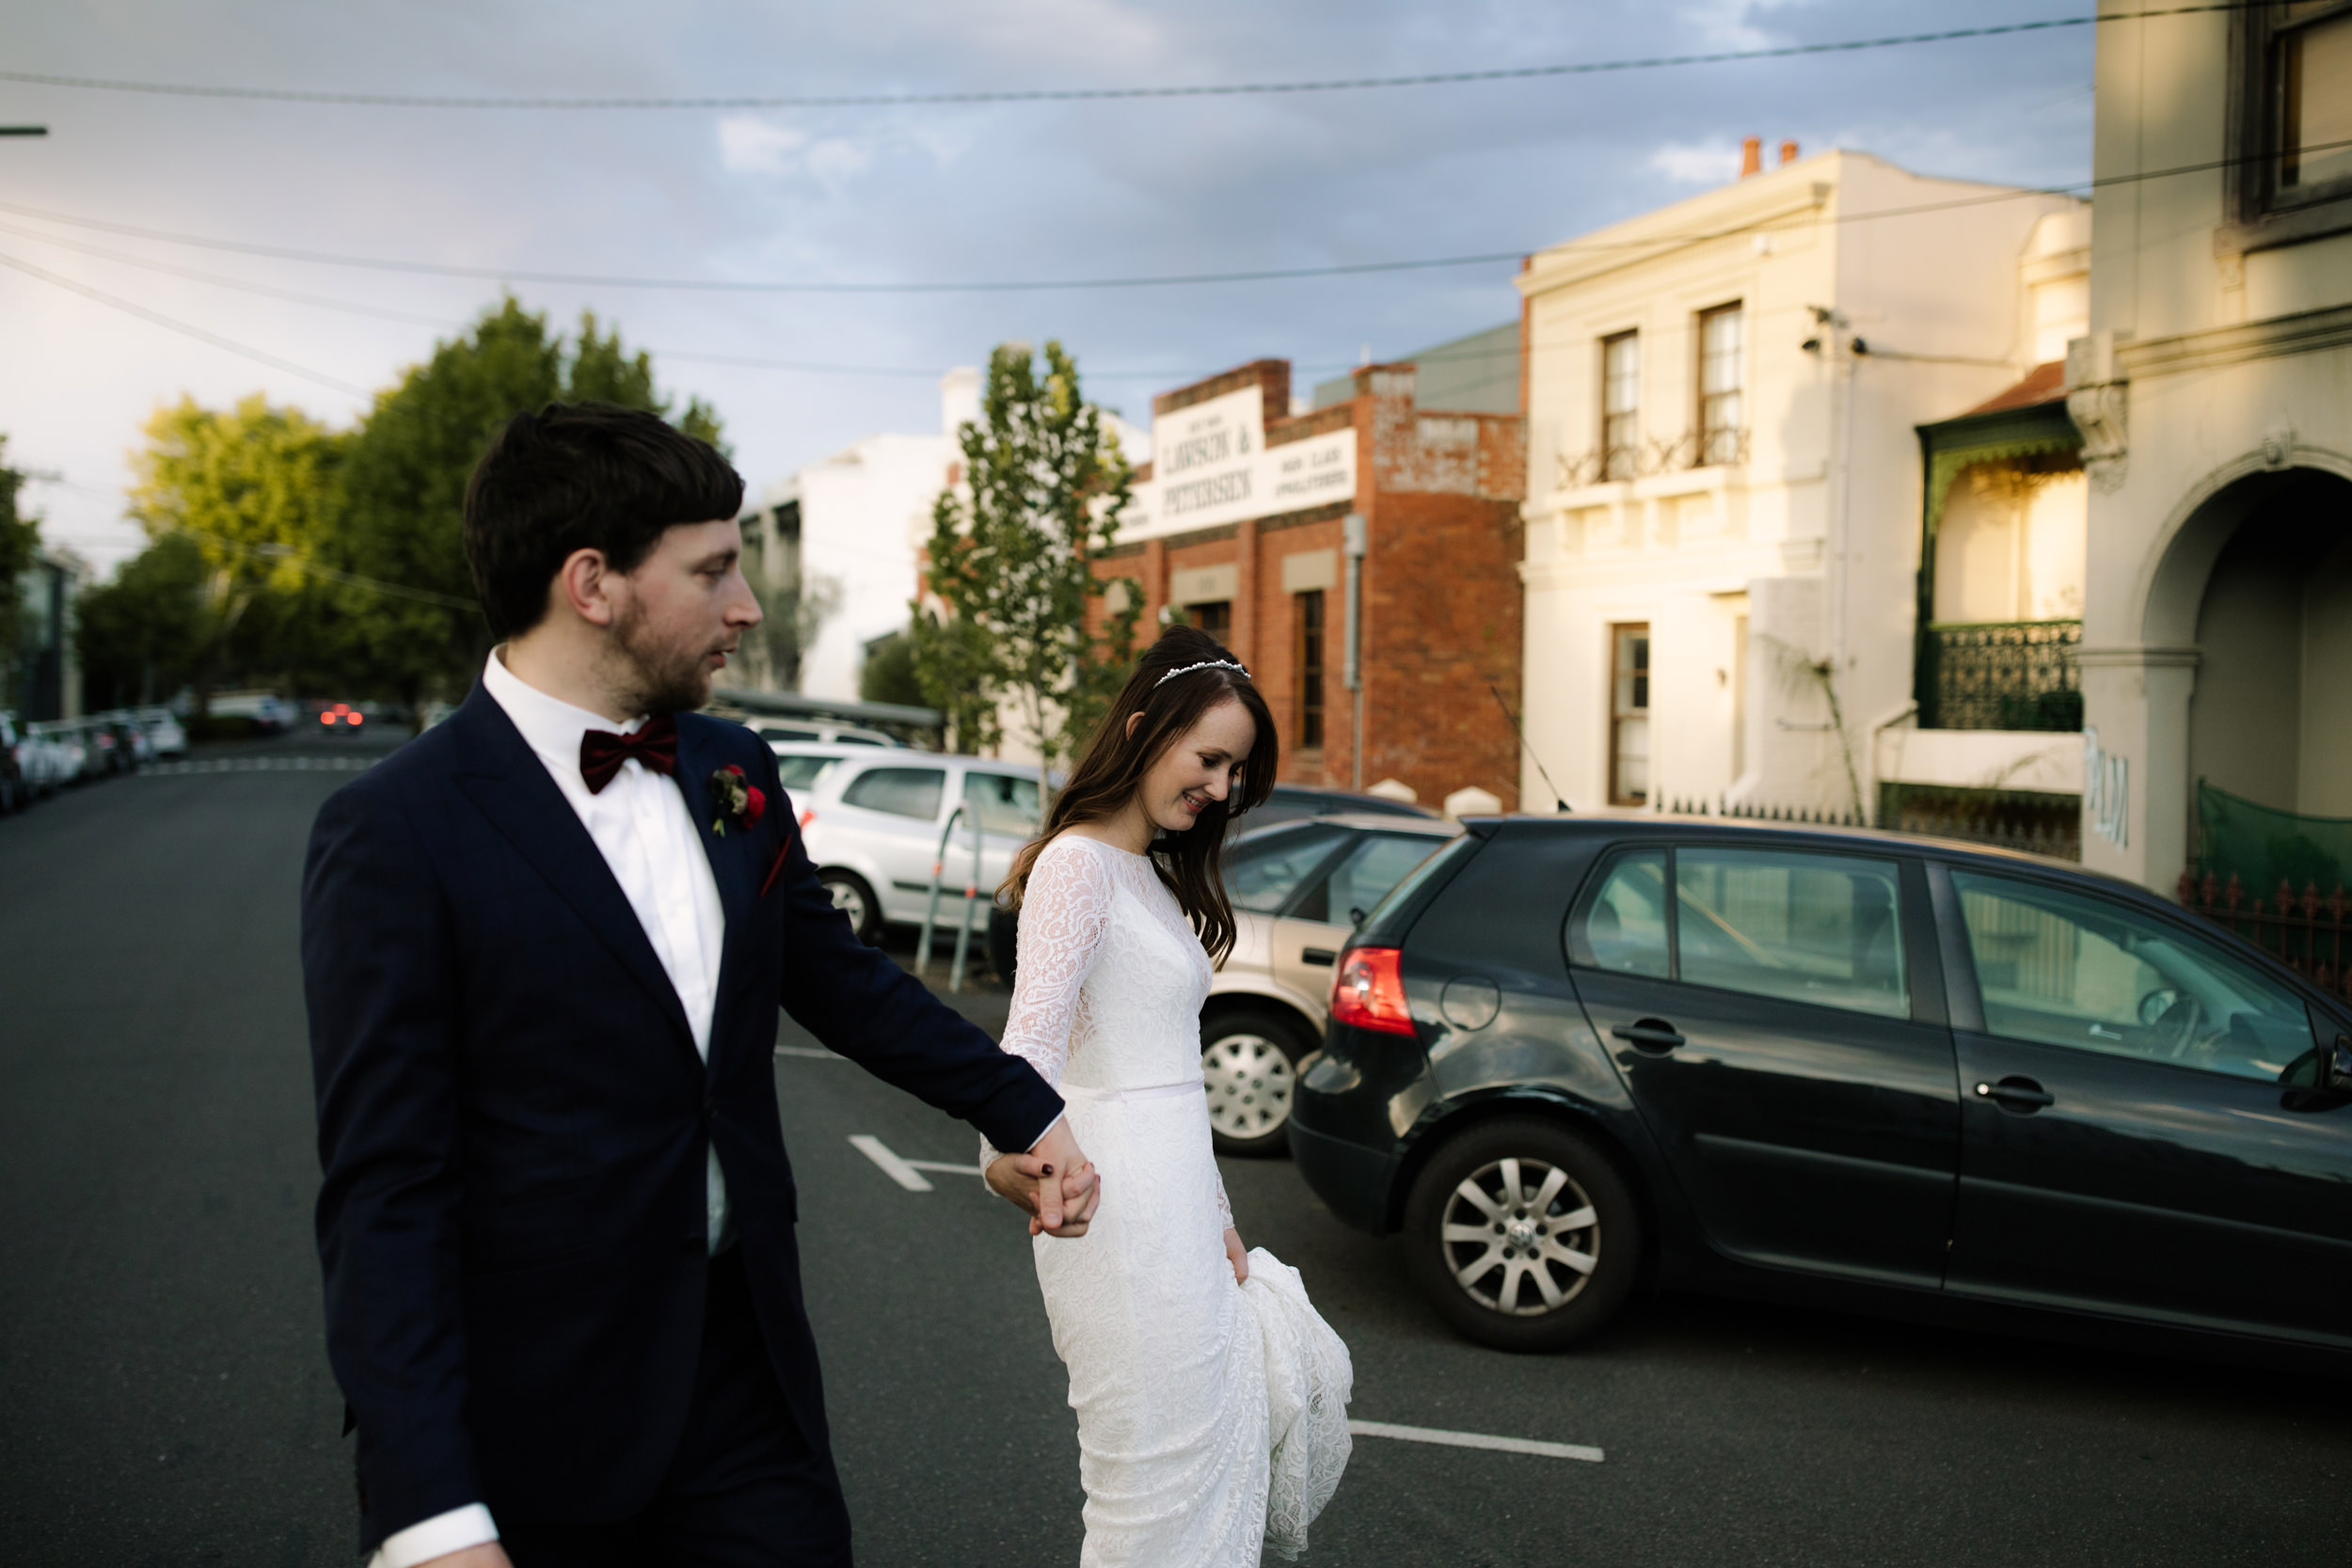 I_Got_You_Babe_Weddings_Emily_Matt_Rupert_Glasshaus_Melbourne0178.JPG